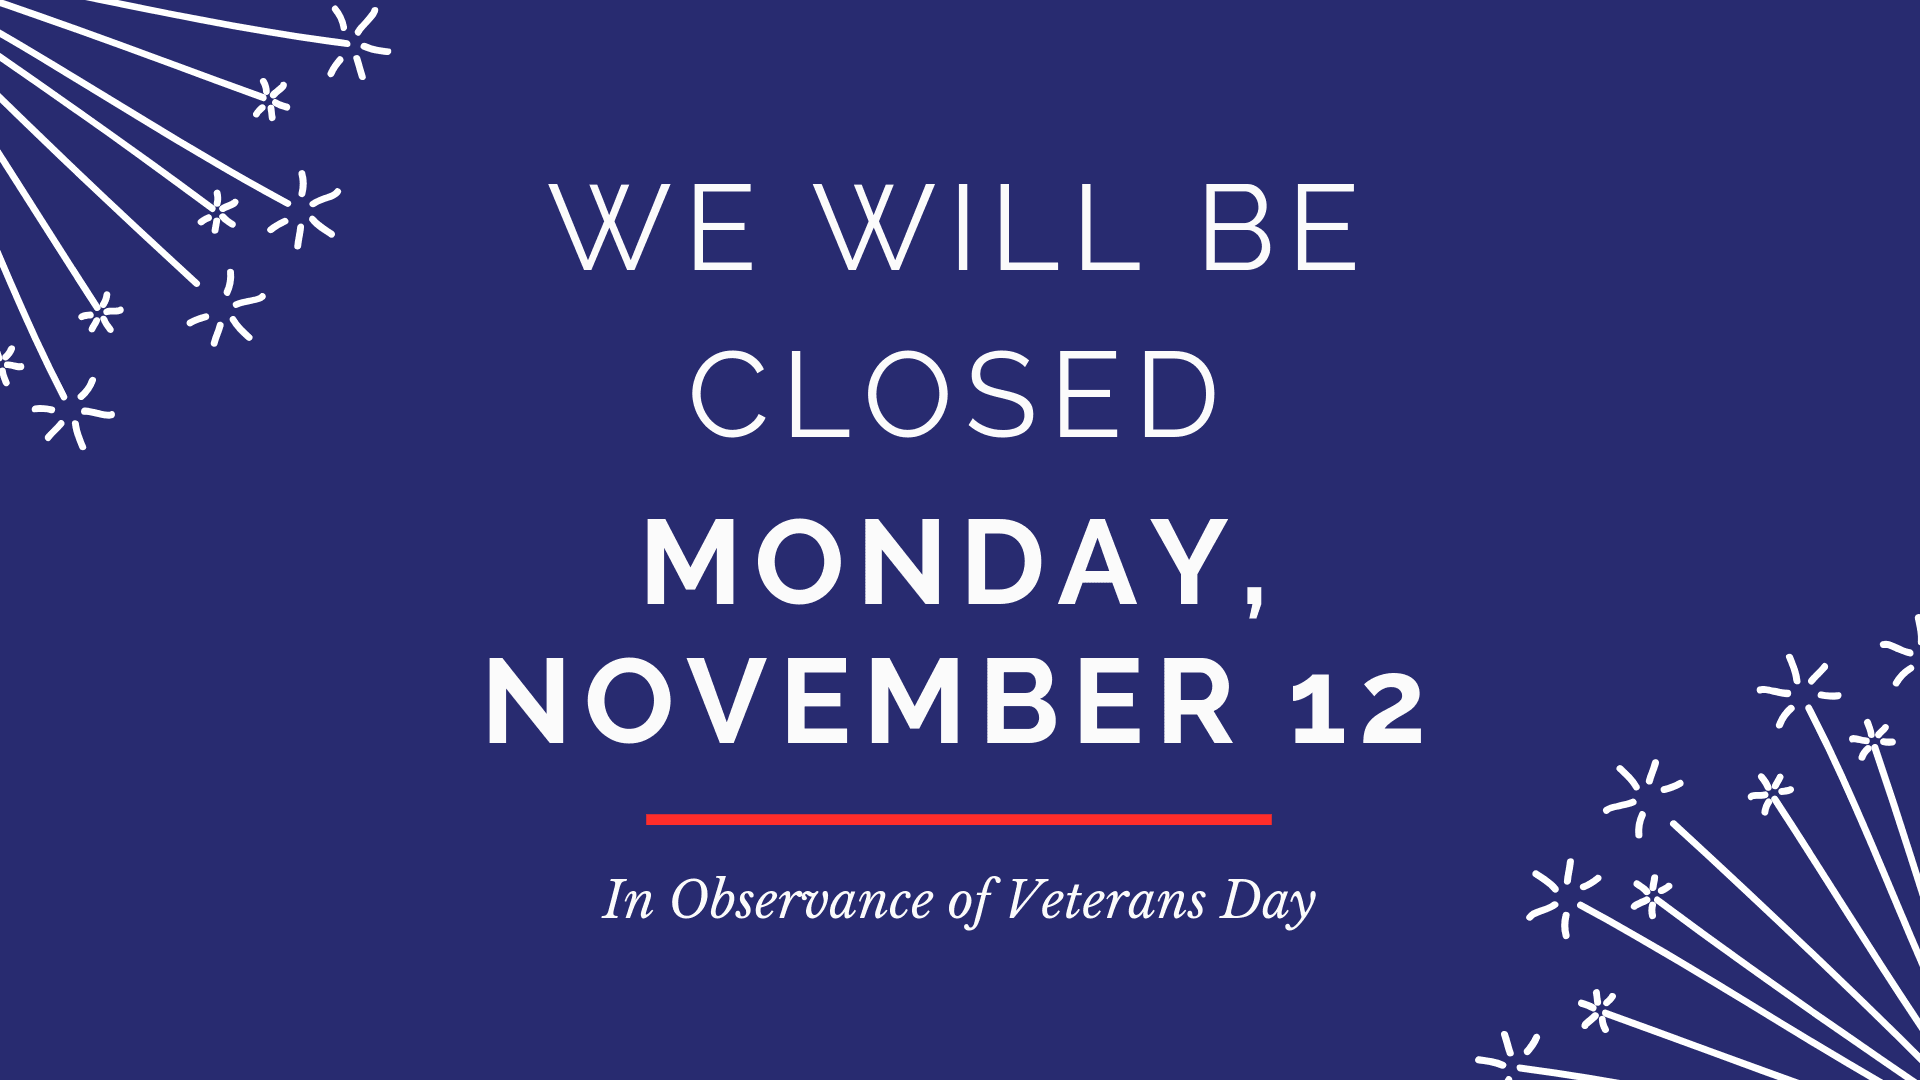 Library Closing Monday November 12 in observance of Veterans Day